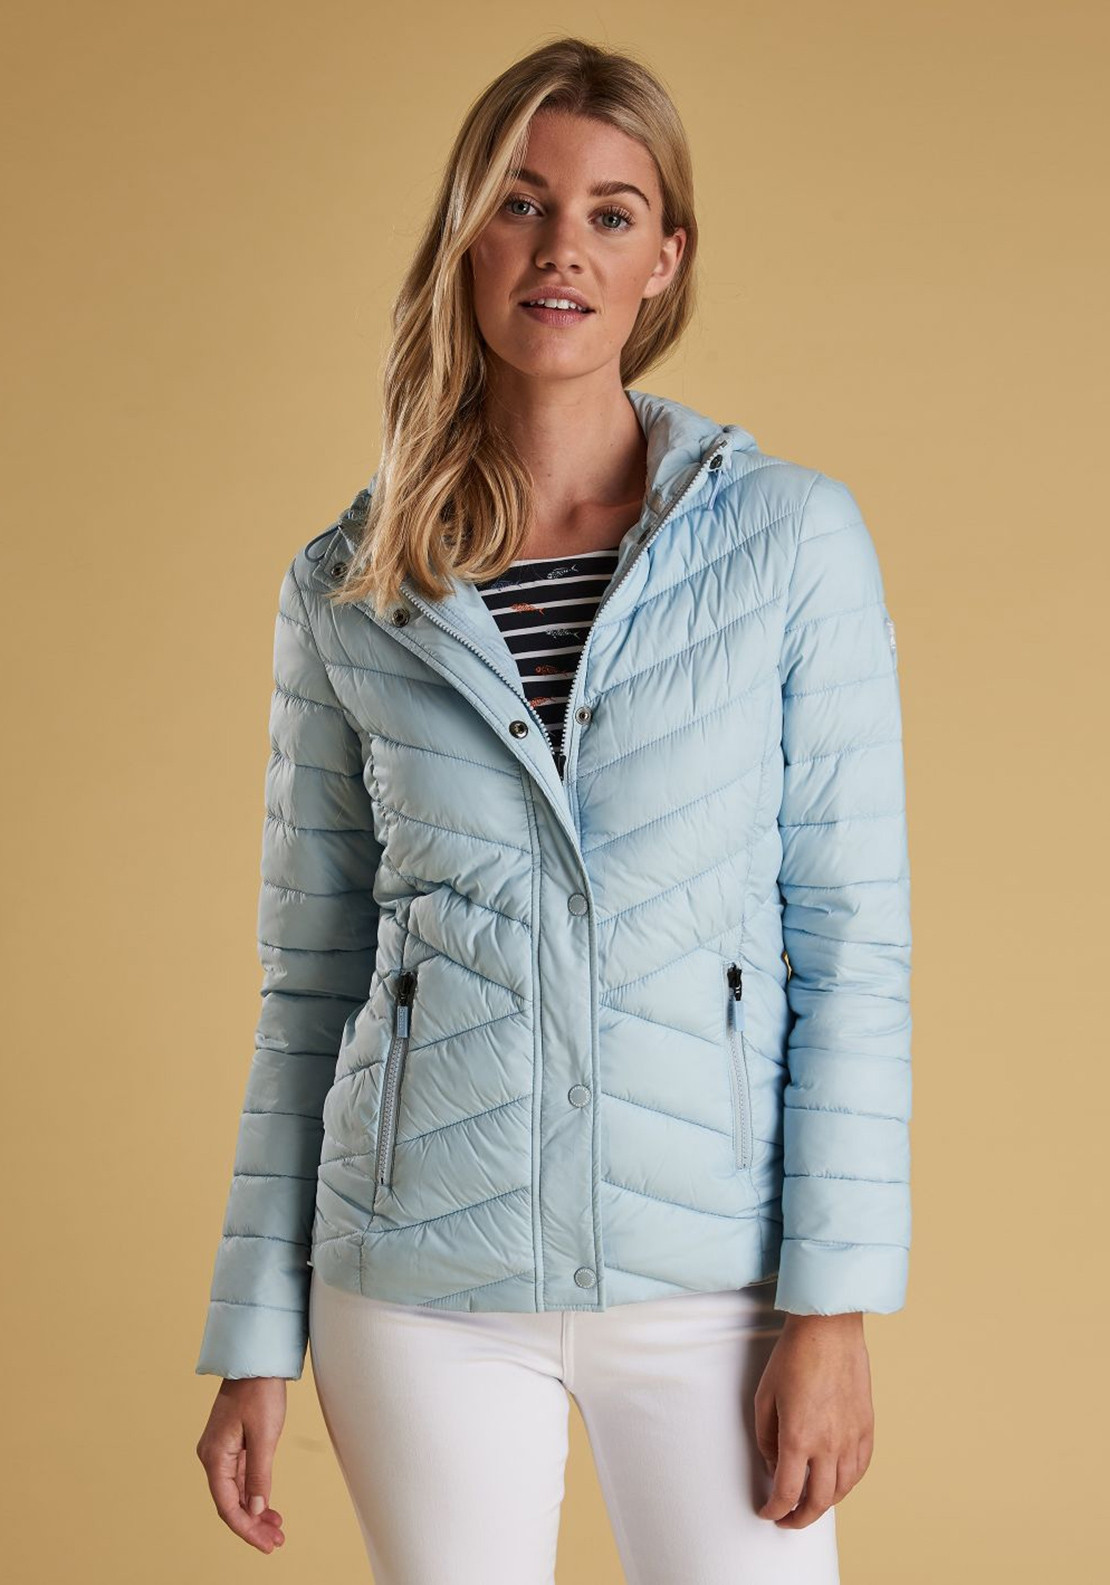 b5f240c204ef0 Barbour Womens Isobath Quilted Jacket, Powder Blue. Be the first to review  this product